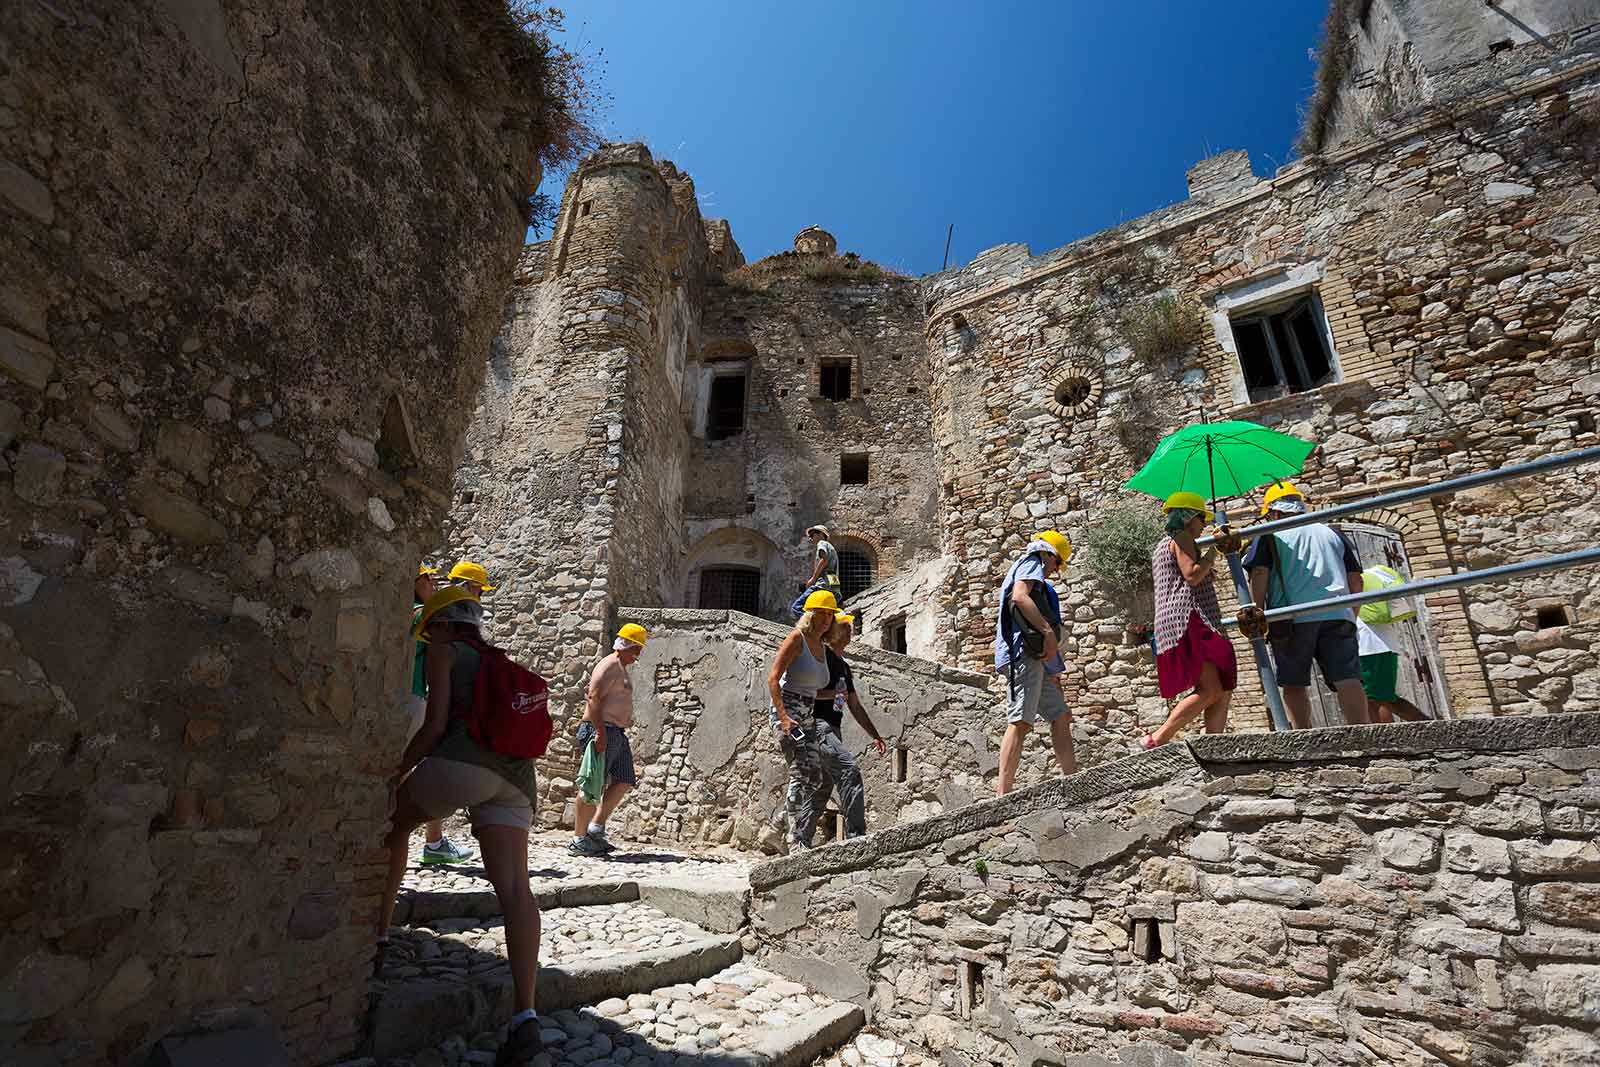 Not only do you need a guide to explore Craco, but you'll also need to wear a hard hat.